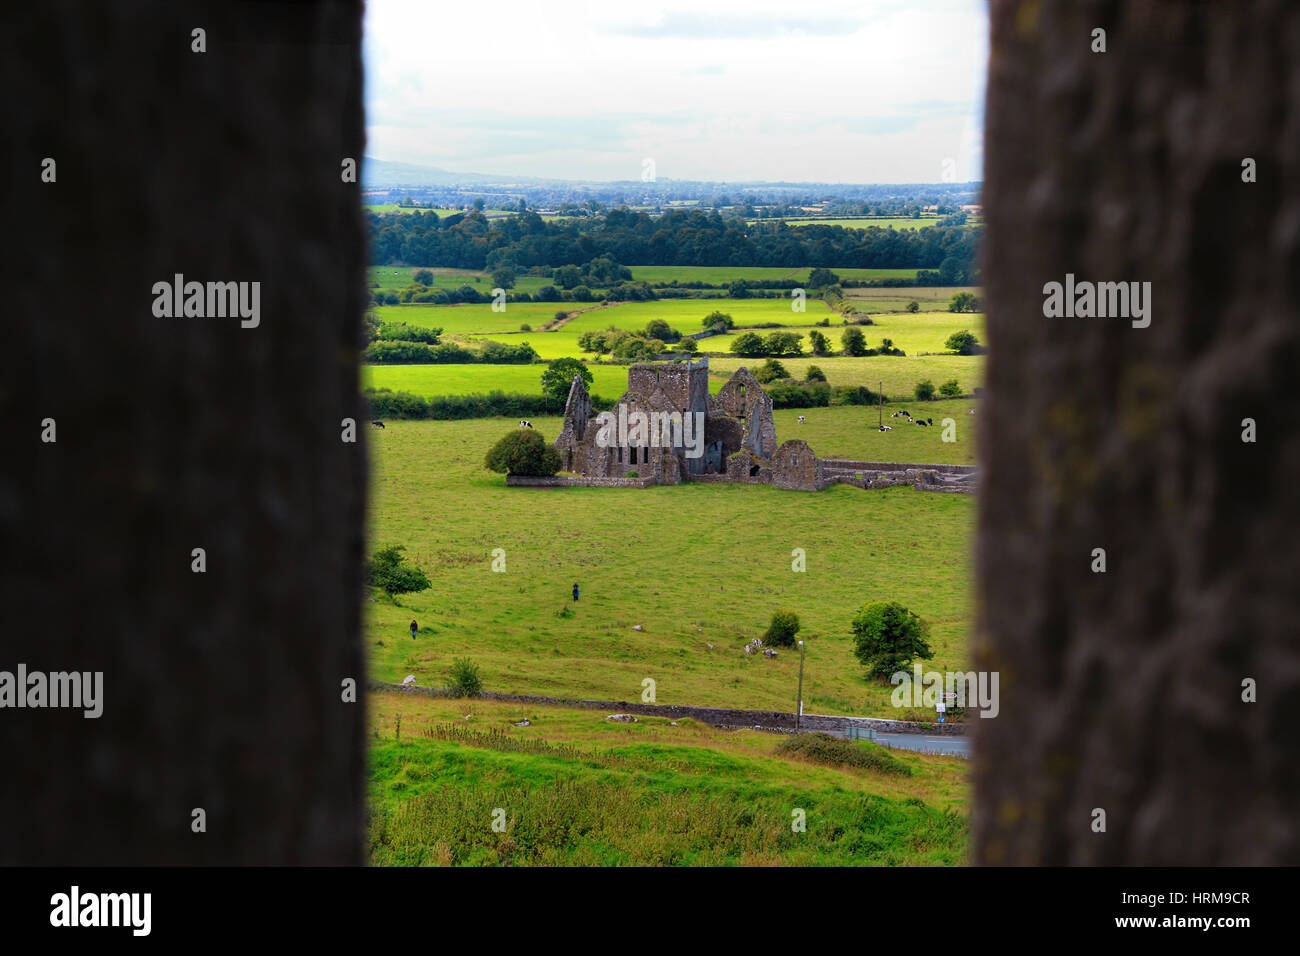 The Rock of Cashel, also known as Cashel of the Kings and St. Patrick's Rock, is a historic site near the village - Stock Image